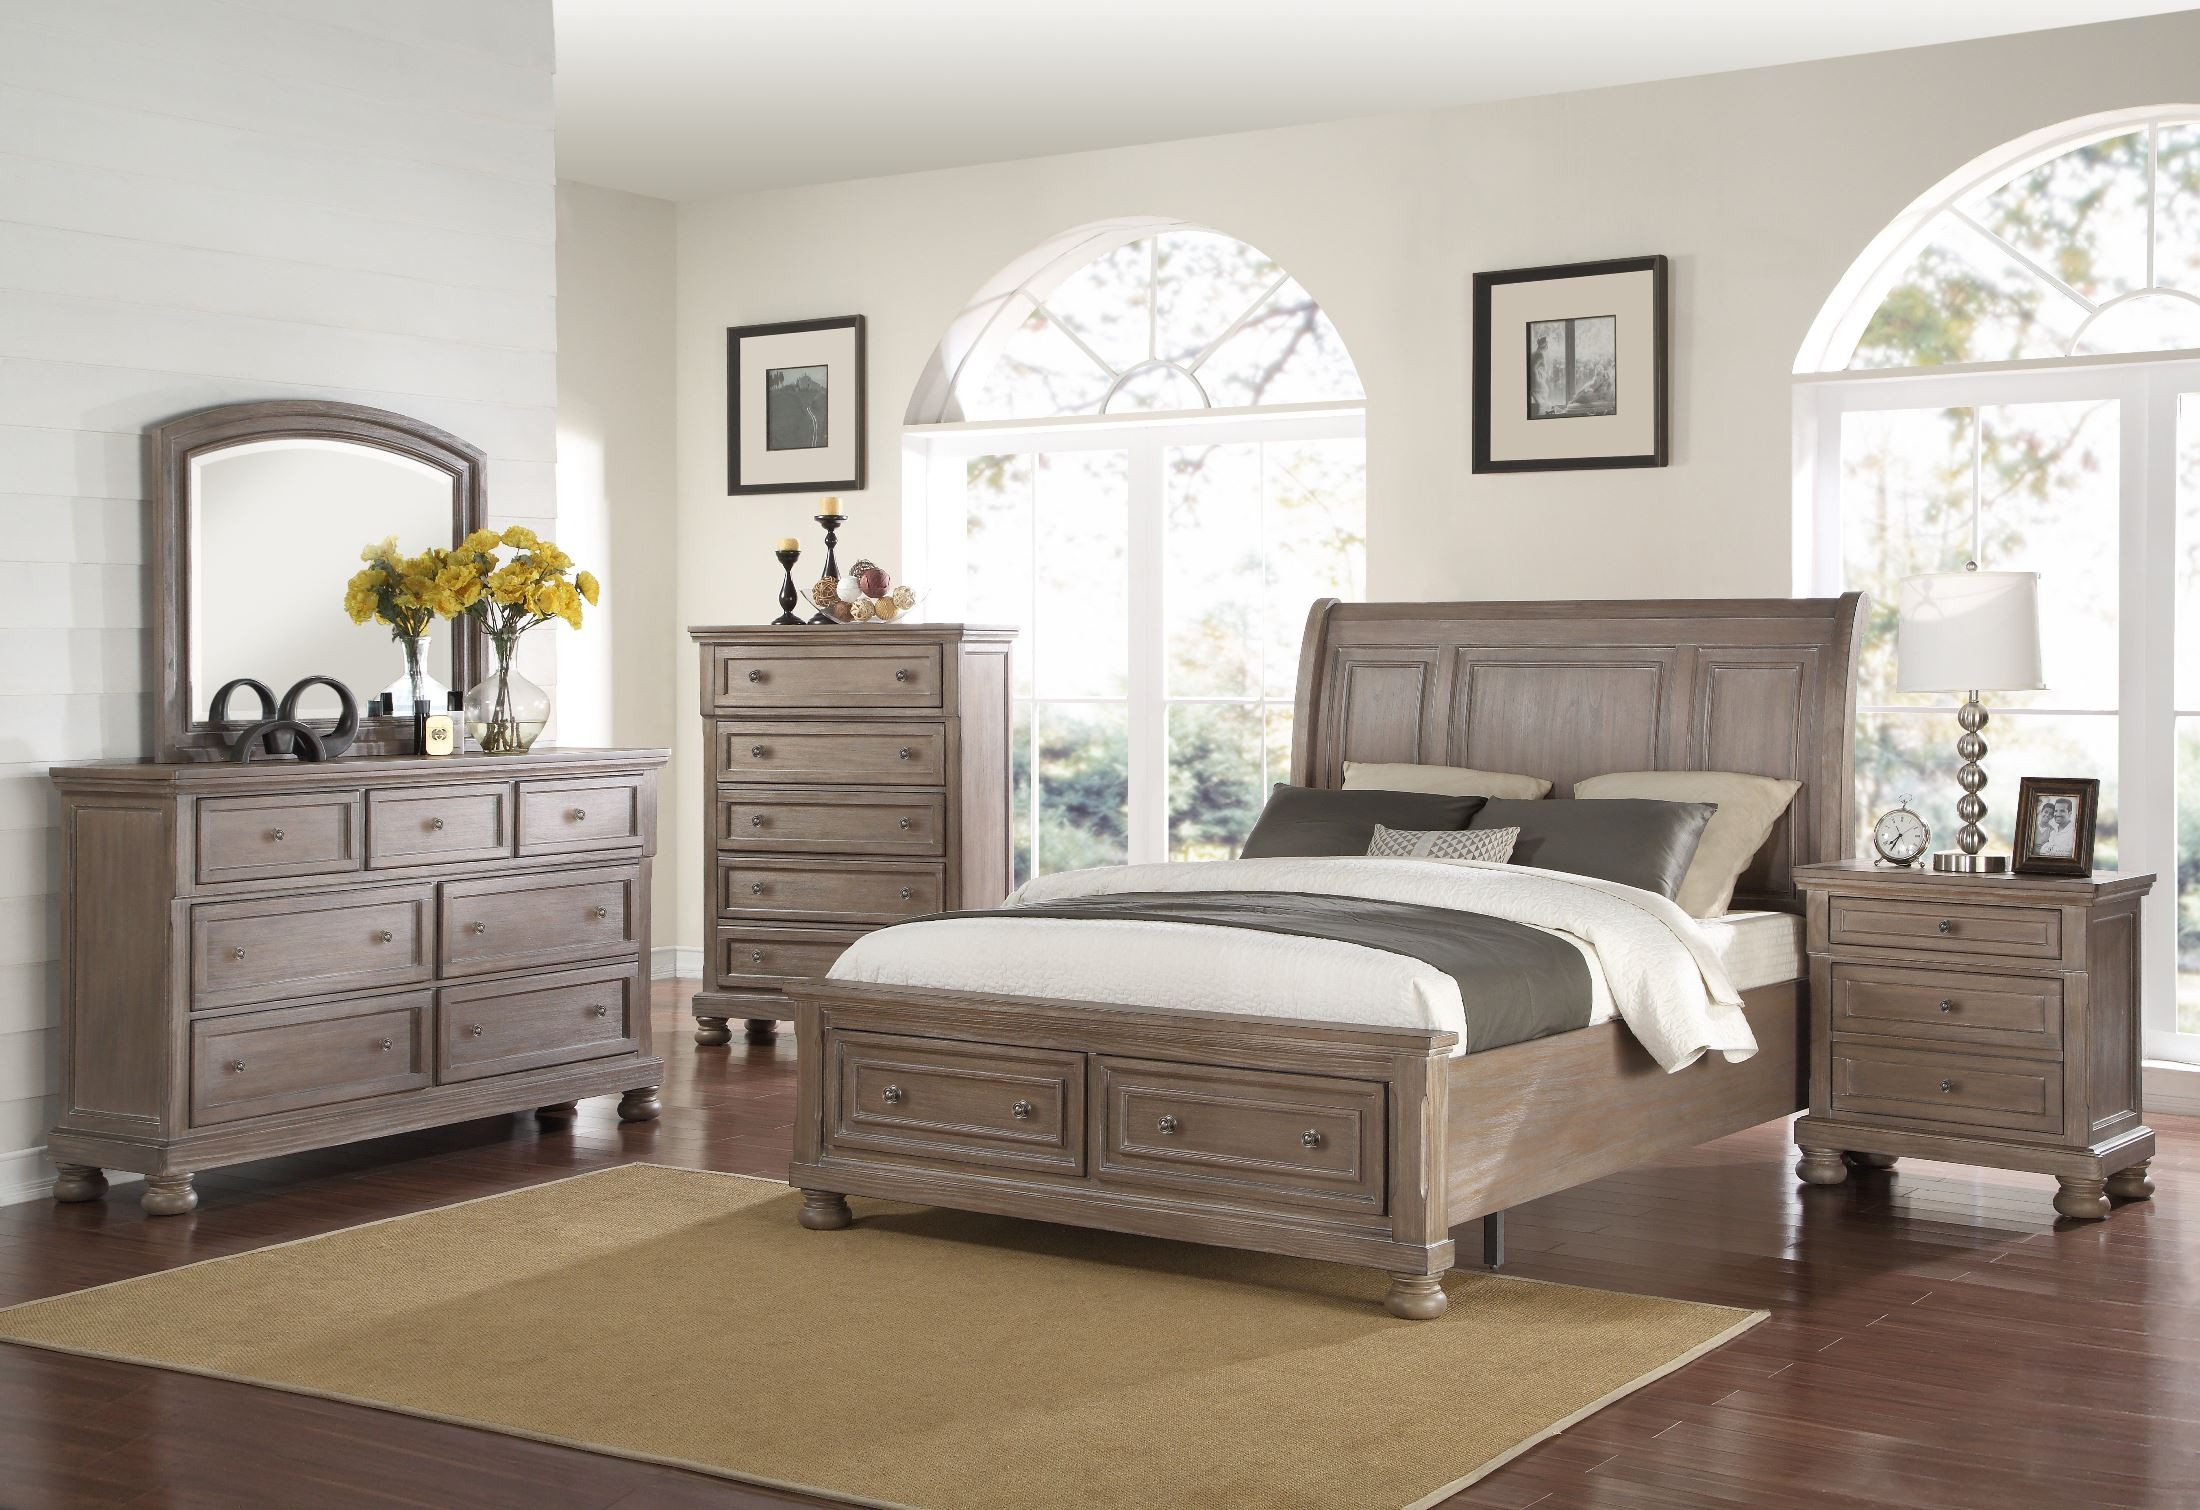 Allegra Pewter Storage Sleigh Bedroom Set From New